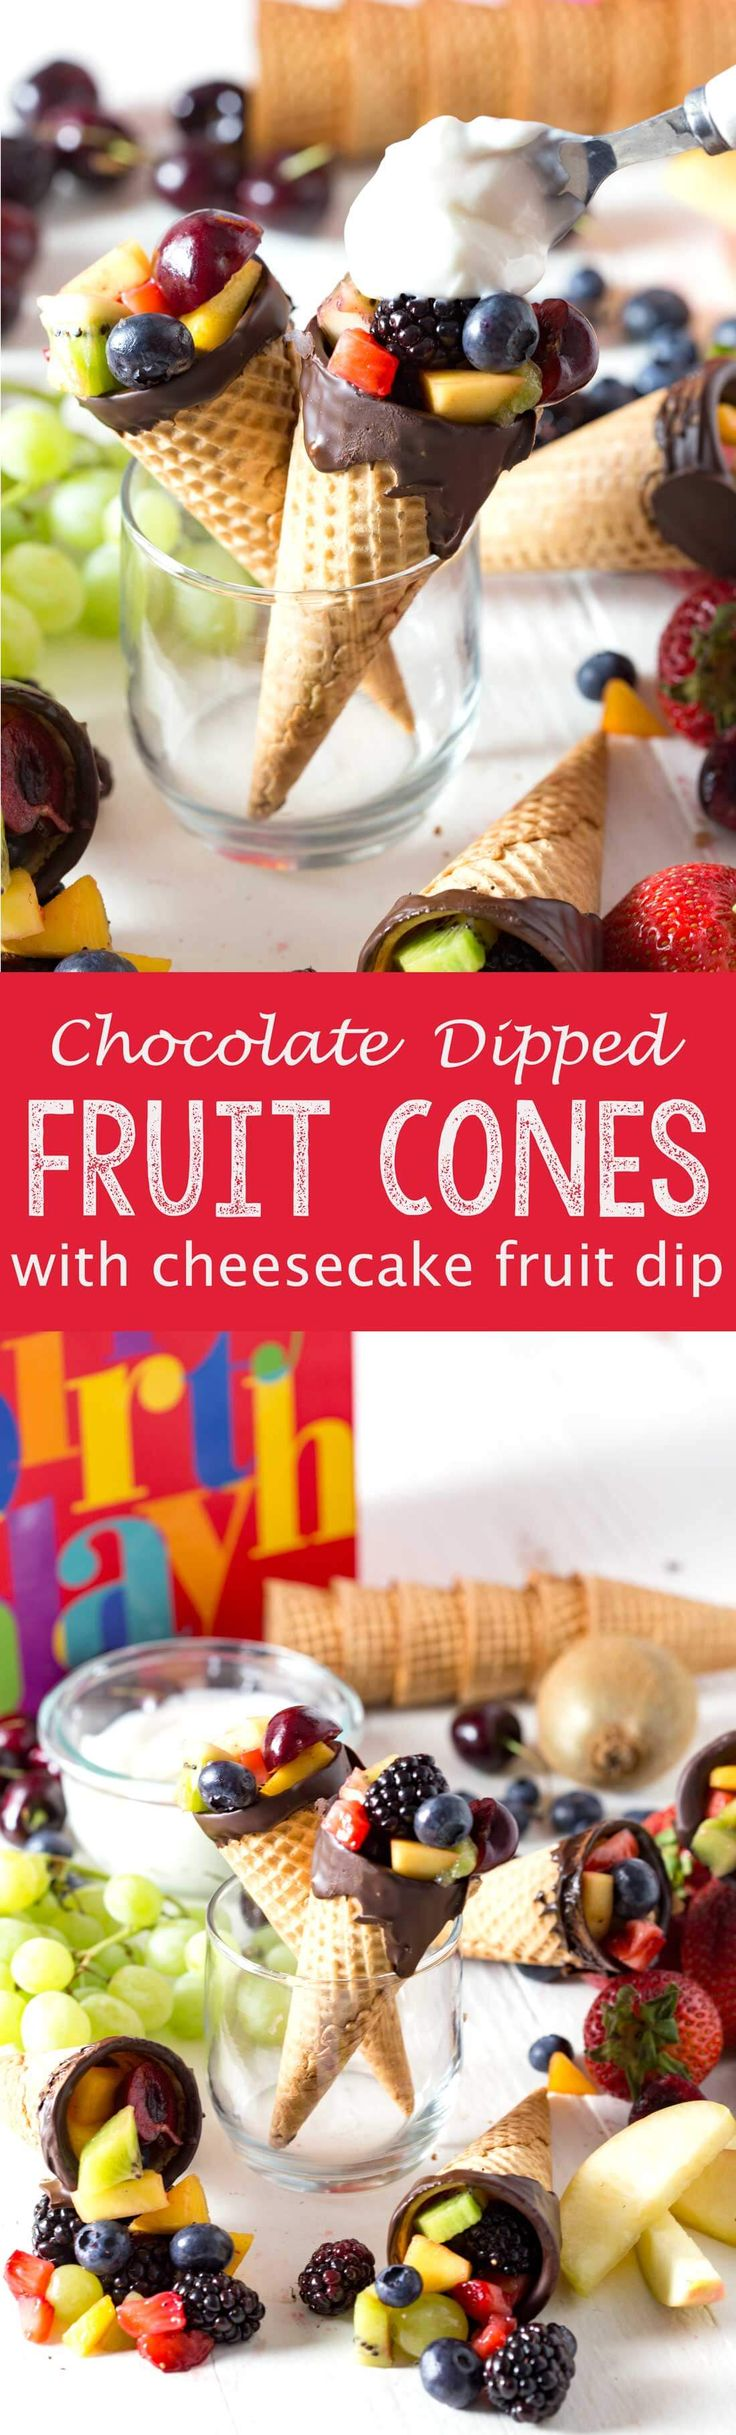 Chocolate dipped fruit cones with a cheesecake fruit dip that is light, fluffy, and delicious! This is a summer recipe you can't pass up. Make this dessert for your next summer party or as a fun treat for your family.